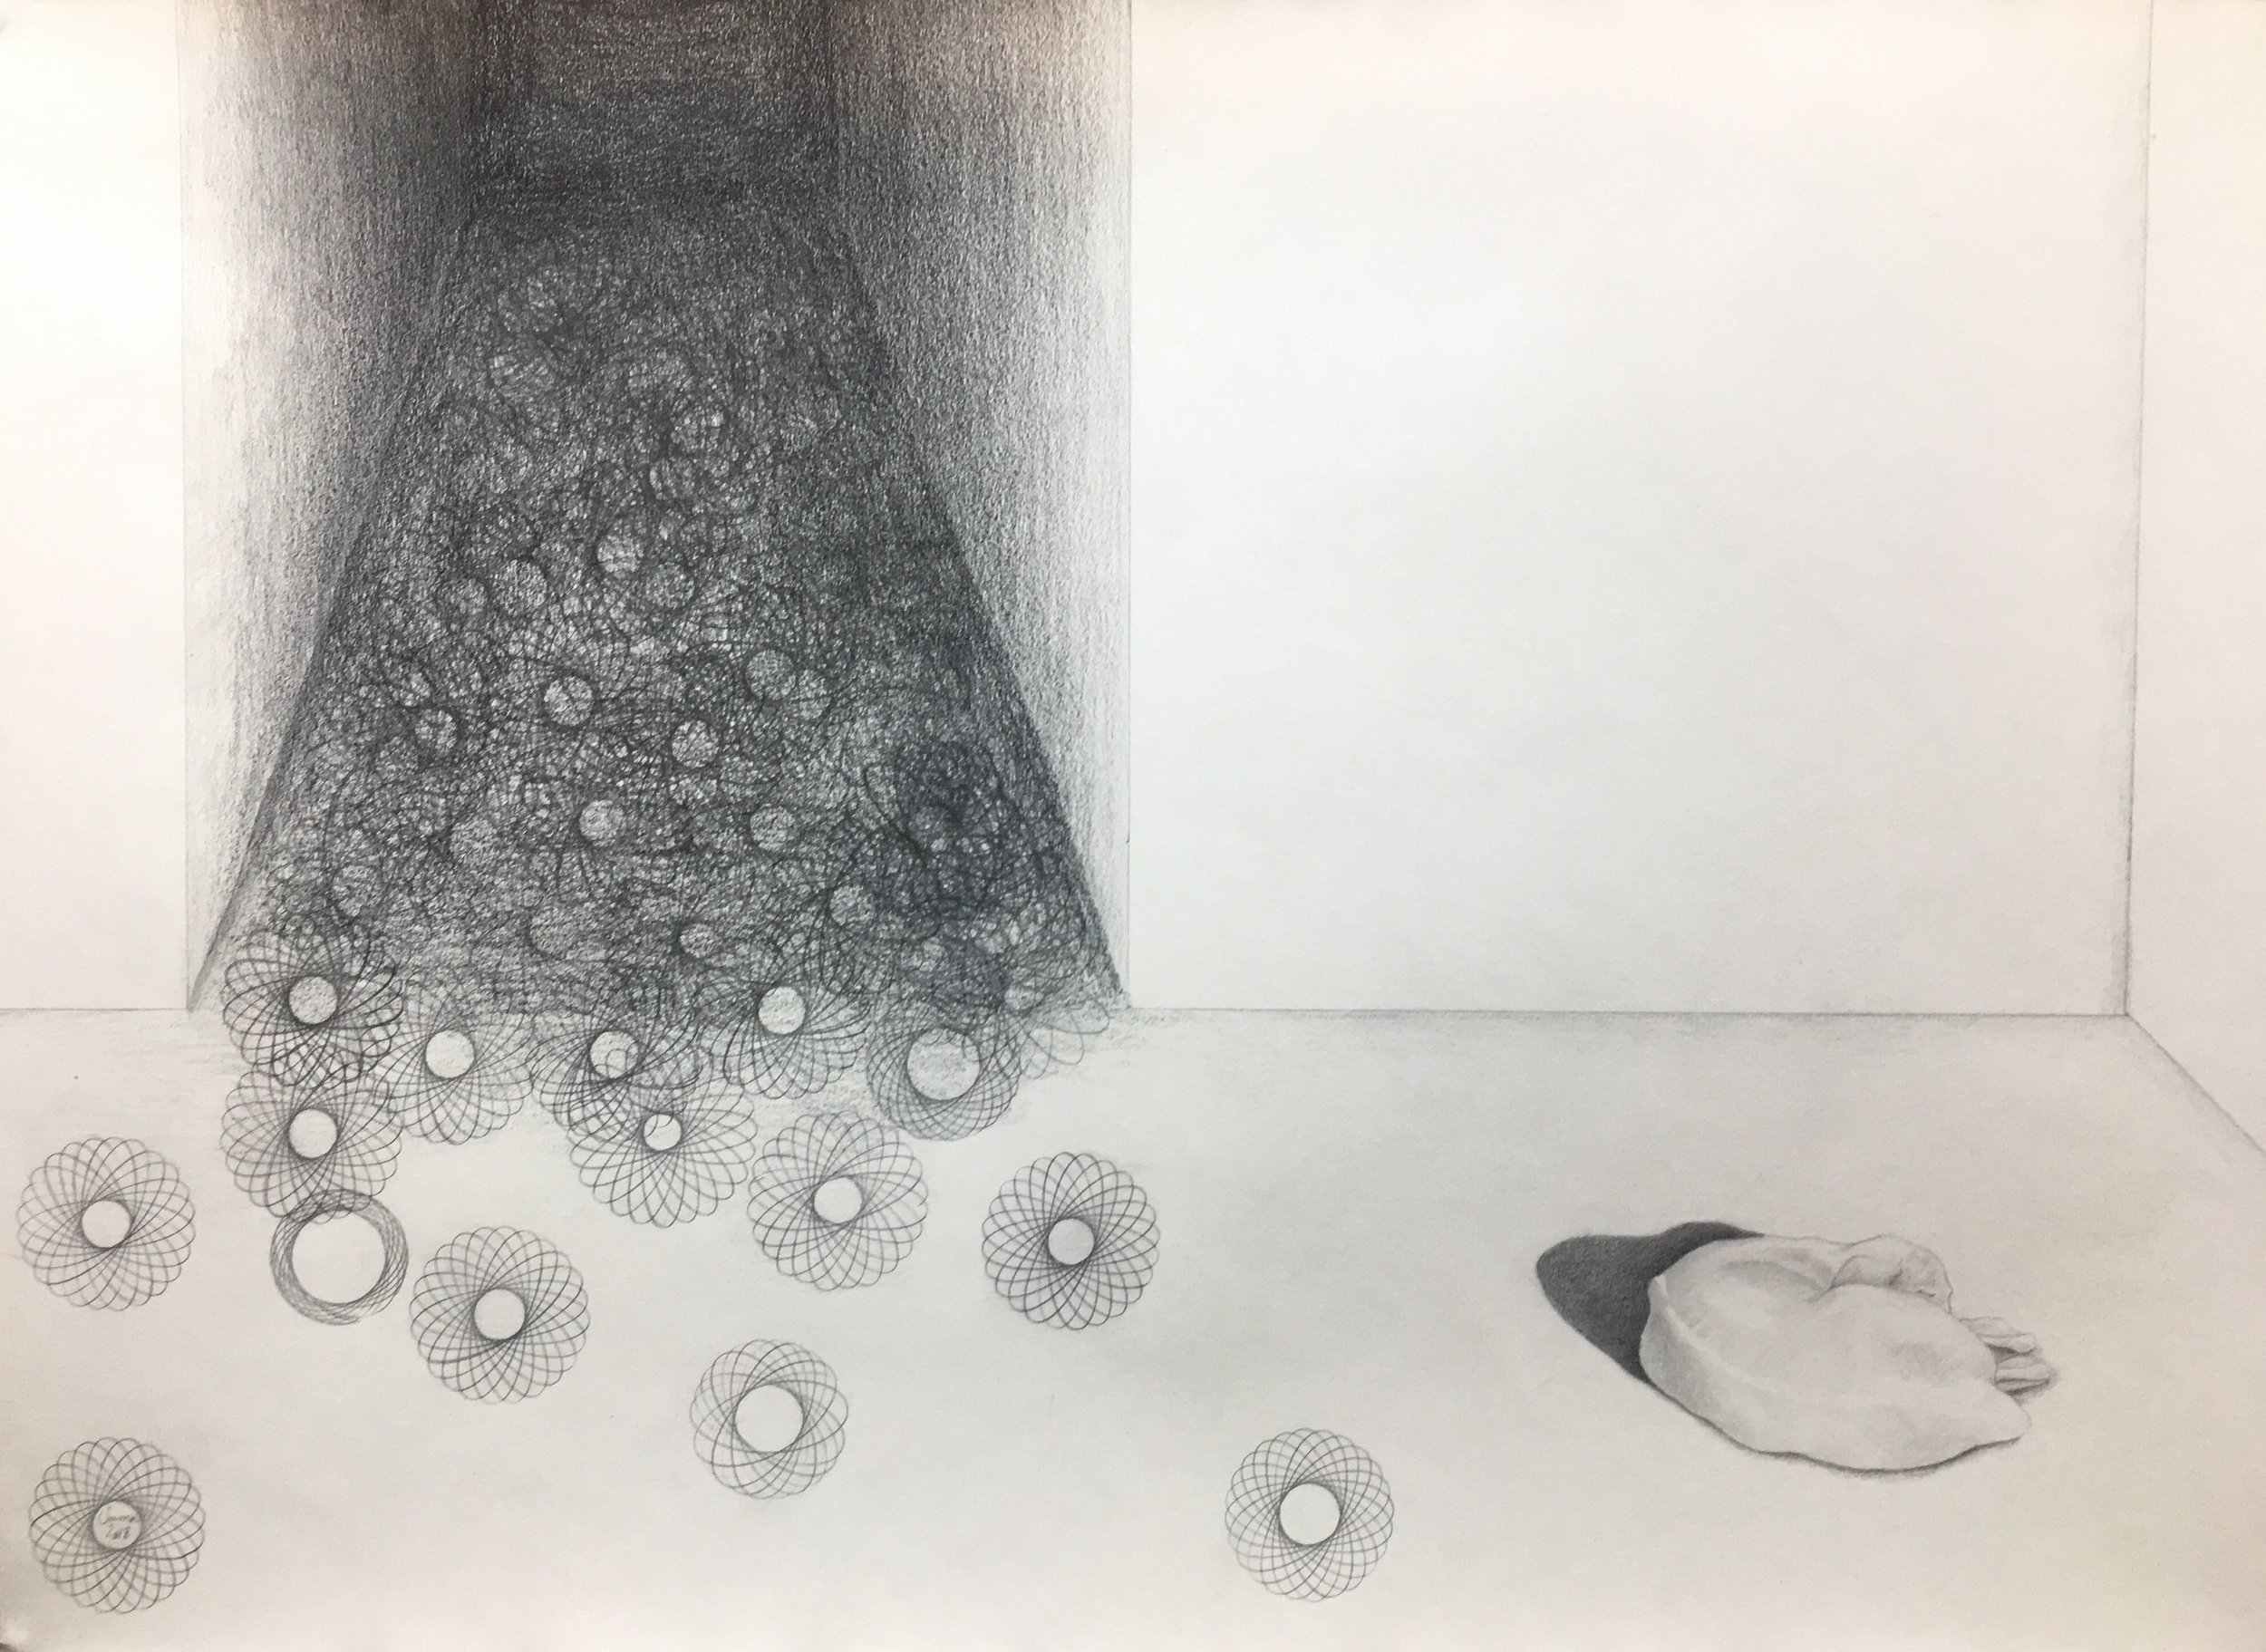 Darkness Sleeping Through, pencil on paper, 42 x 59 cm, 2018